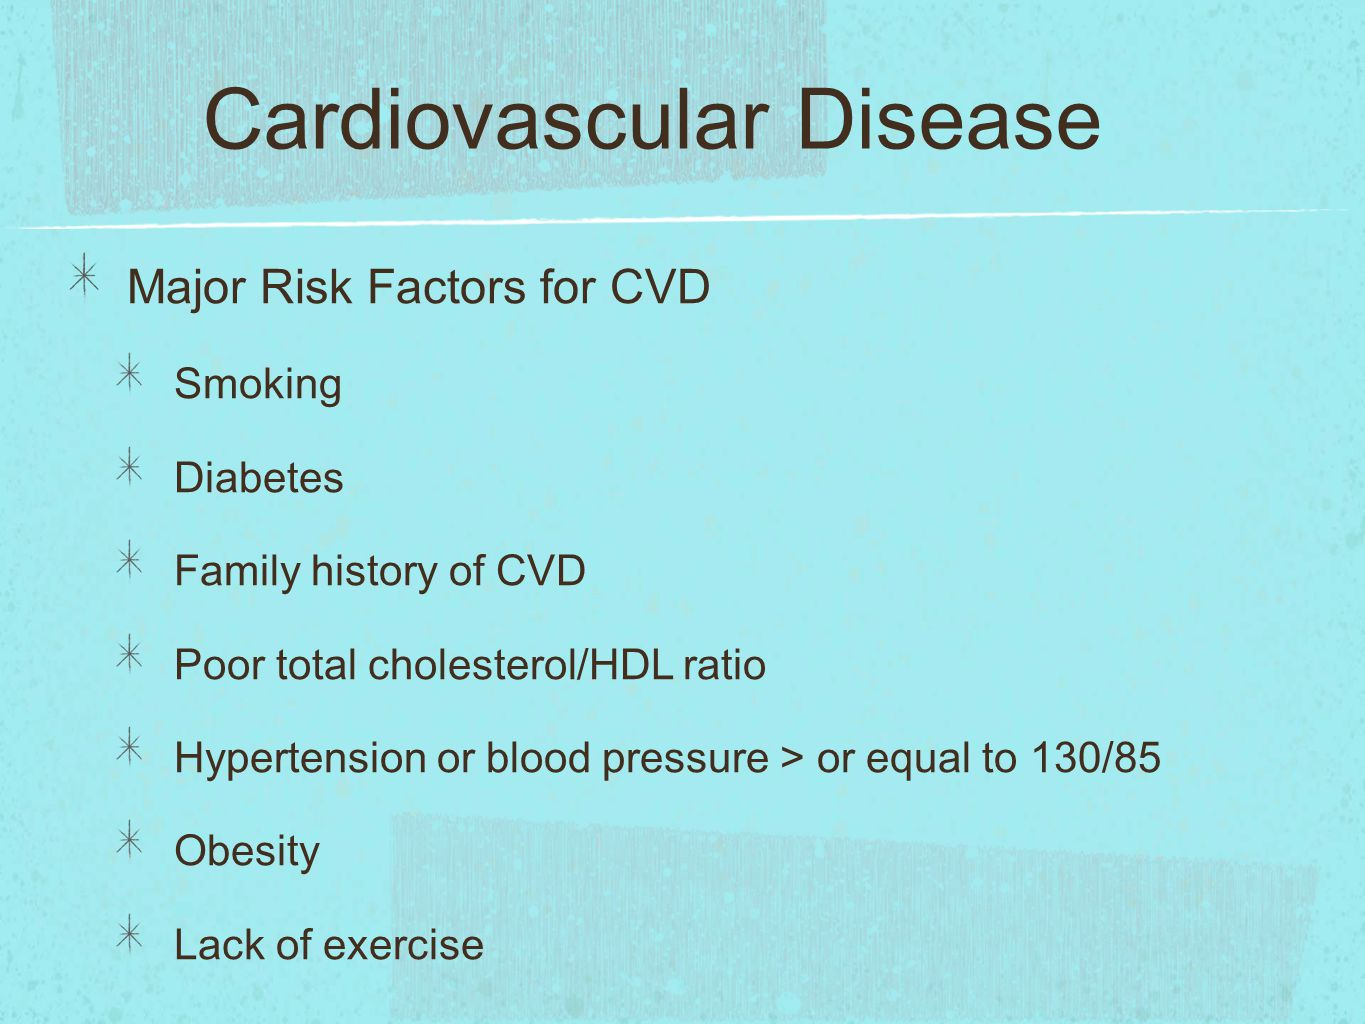 Cardiovascular Disease Major Risk Factors for CVD Smoking Diabetes Family history of CVD Poor total cholesterol/HDL ratio Hypertension or blood pressure > or equal to 130/85 Obesity Lack of exercise